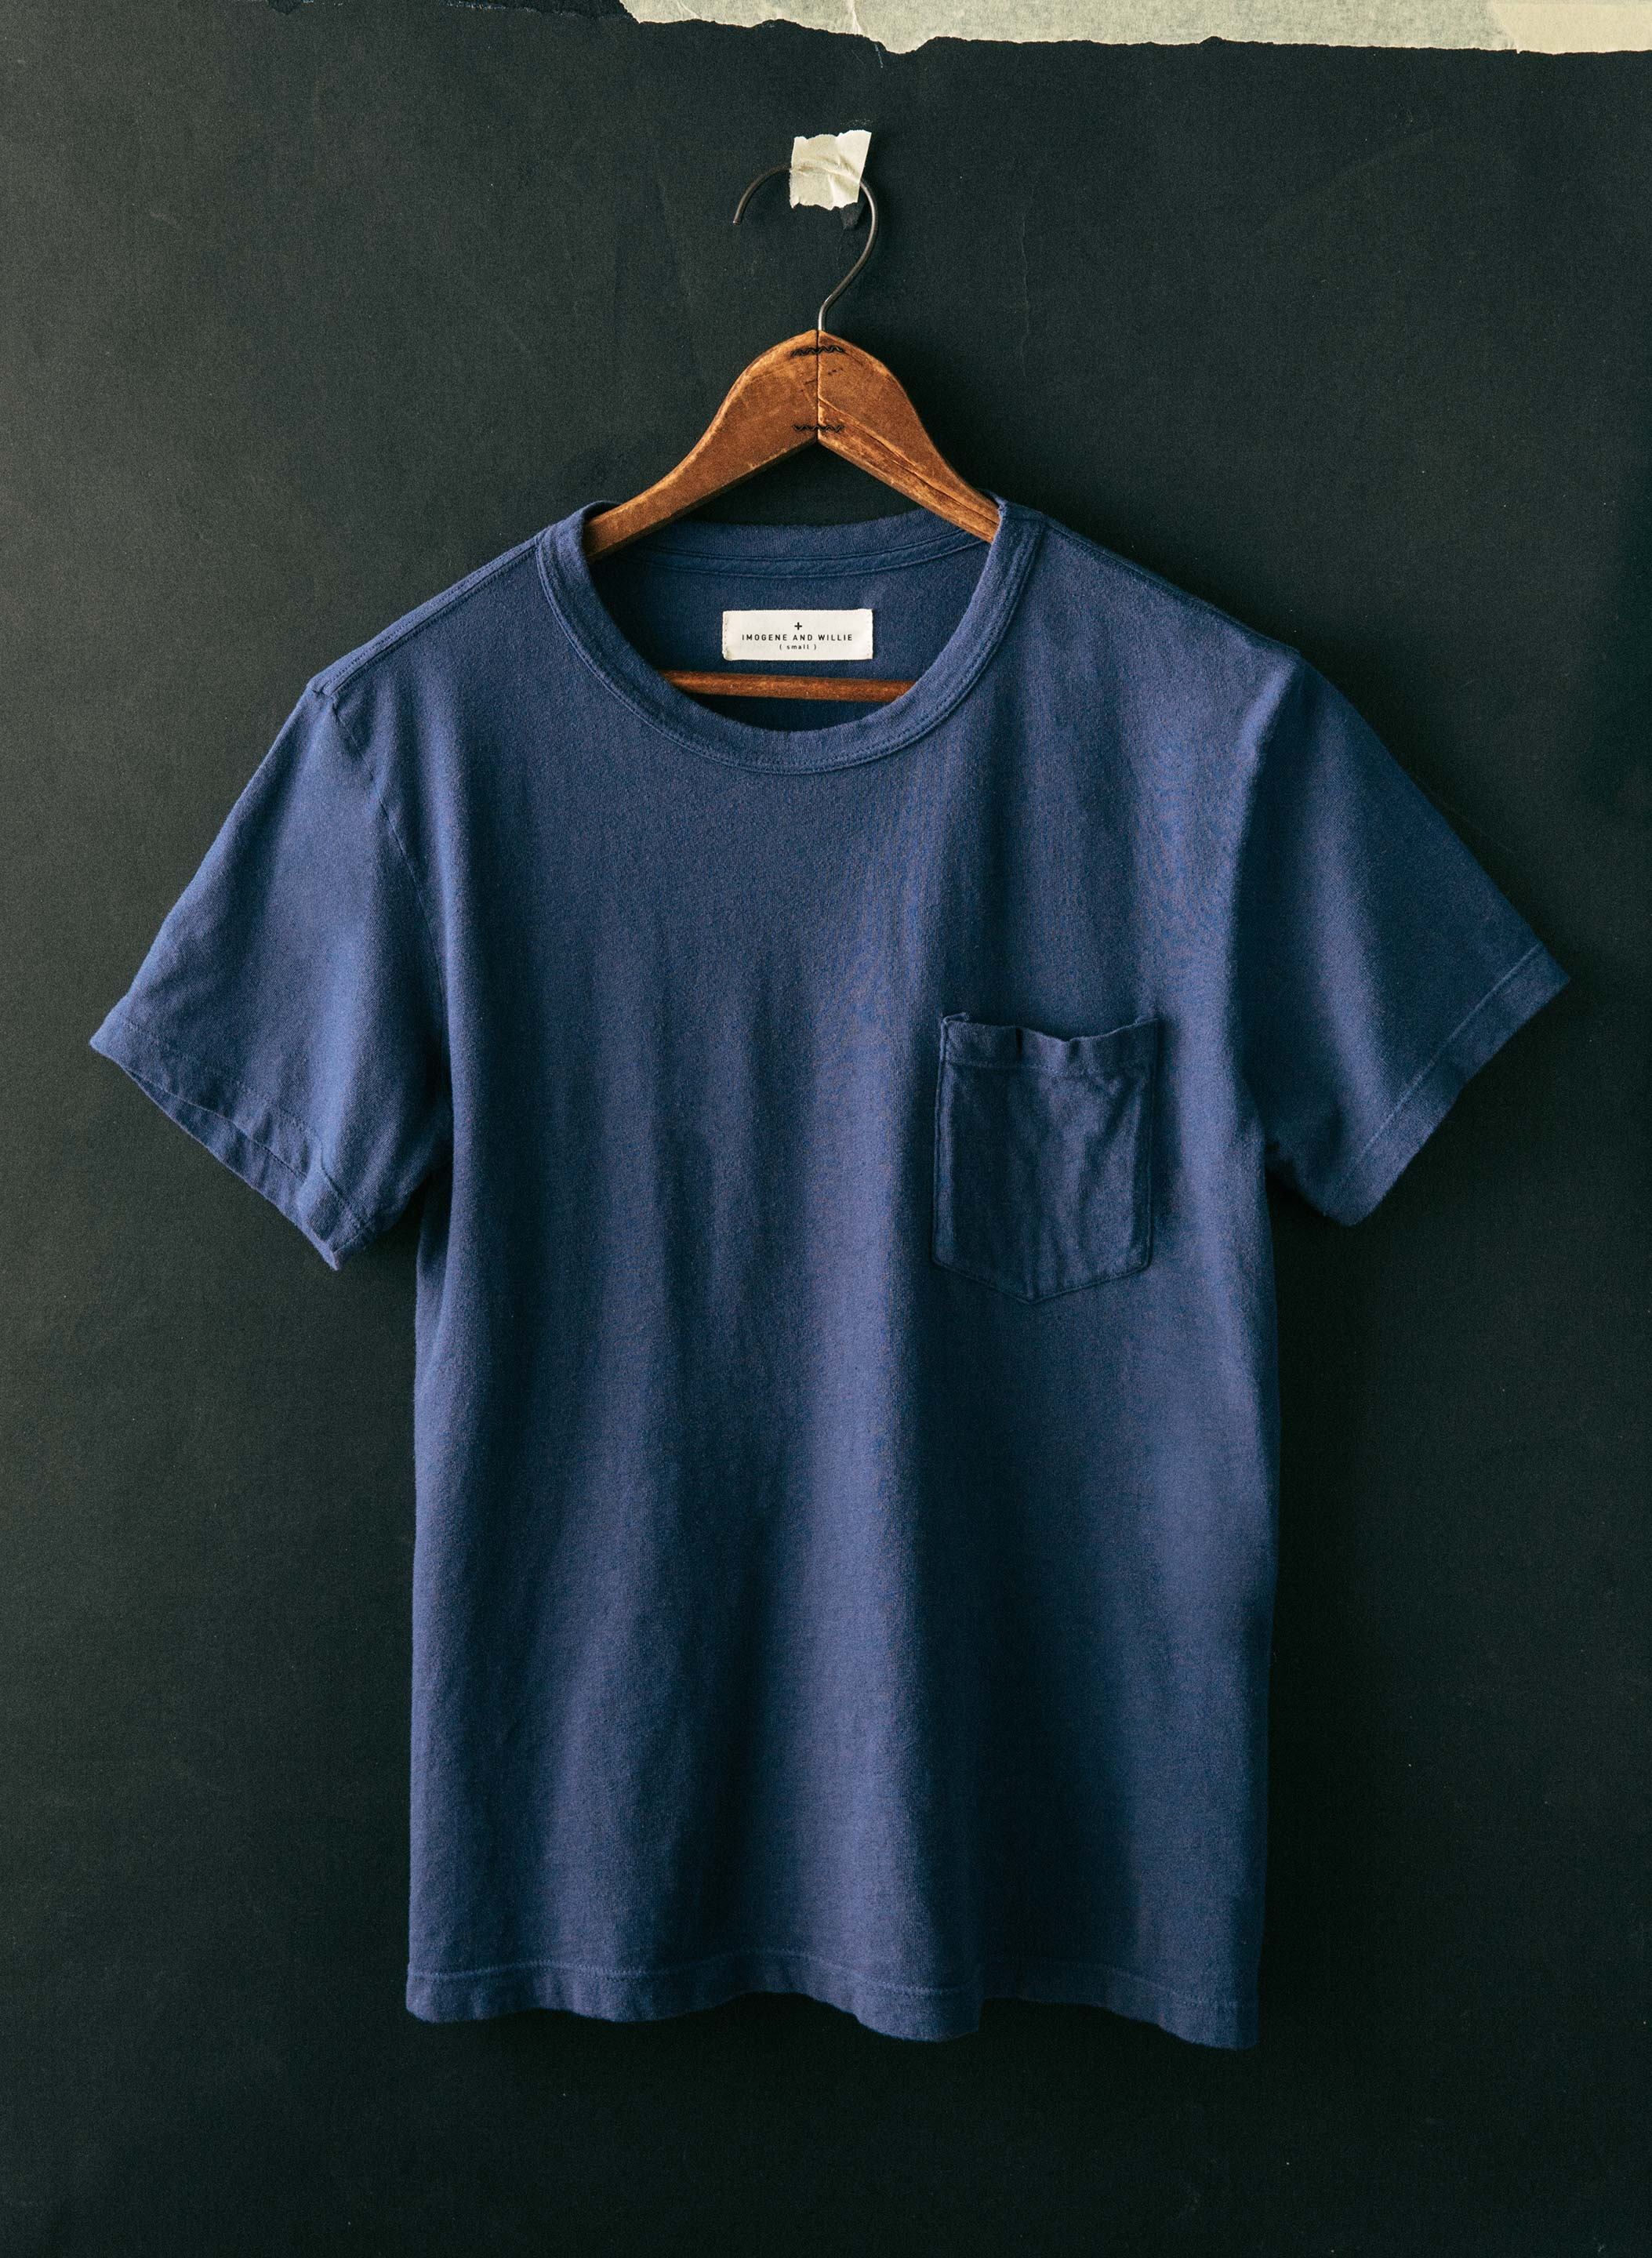 imogene + willie - faded blue knit pocket tee